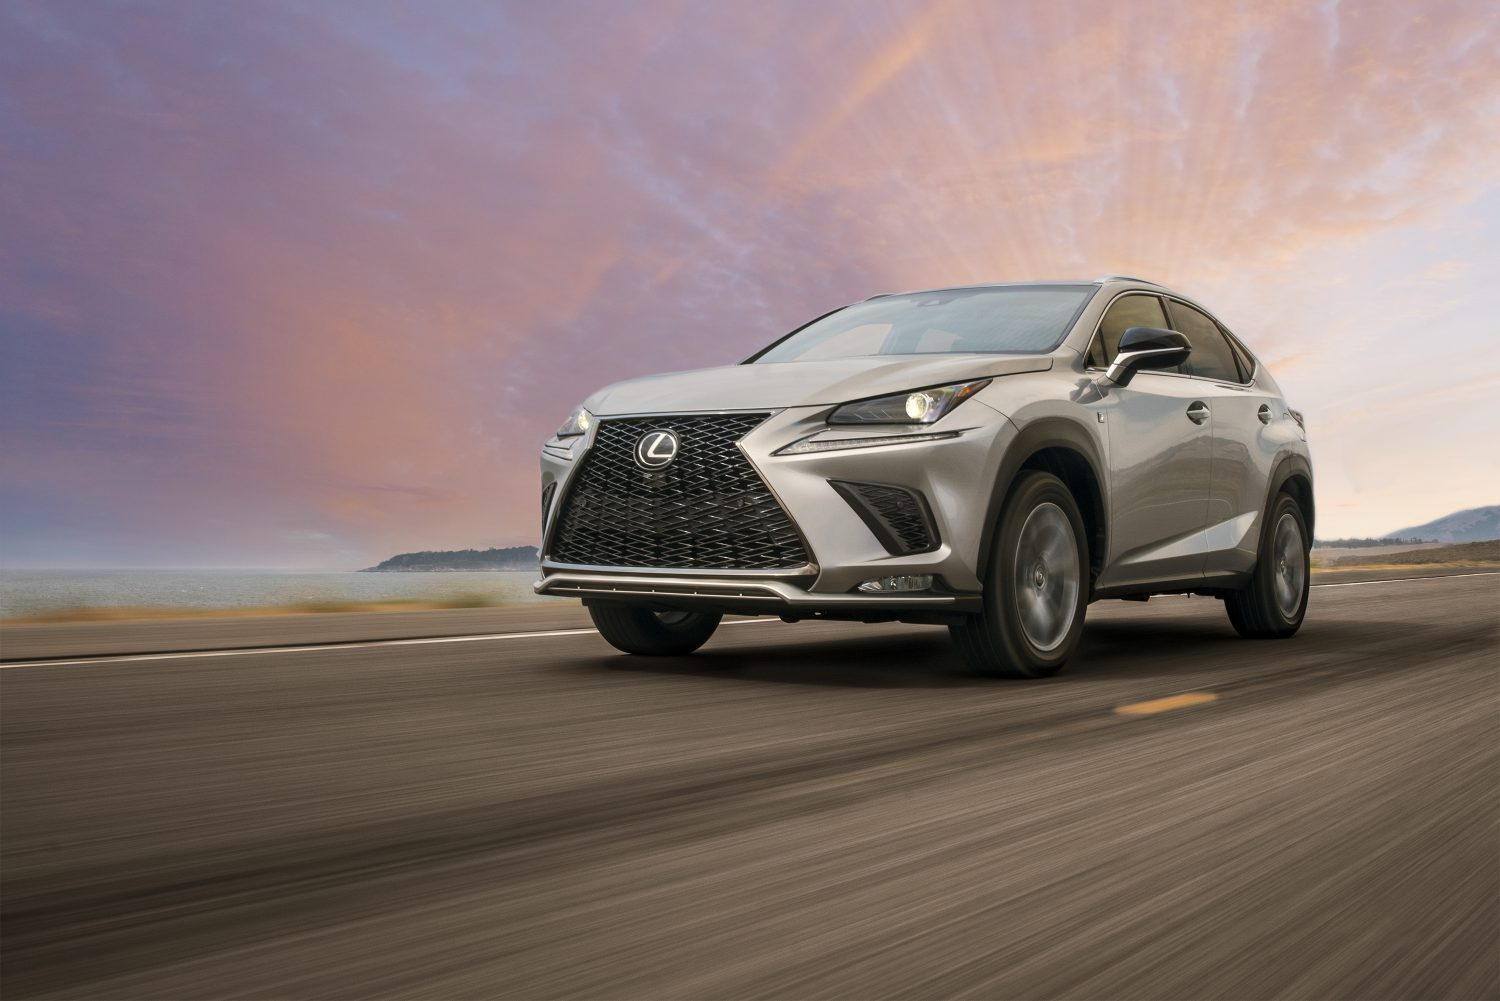 2018 Lexus NX 300: A Refresh with Added Conveniences - Lexus